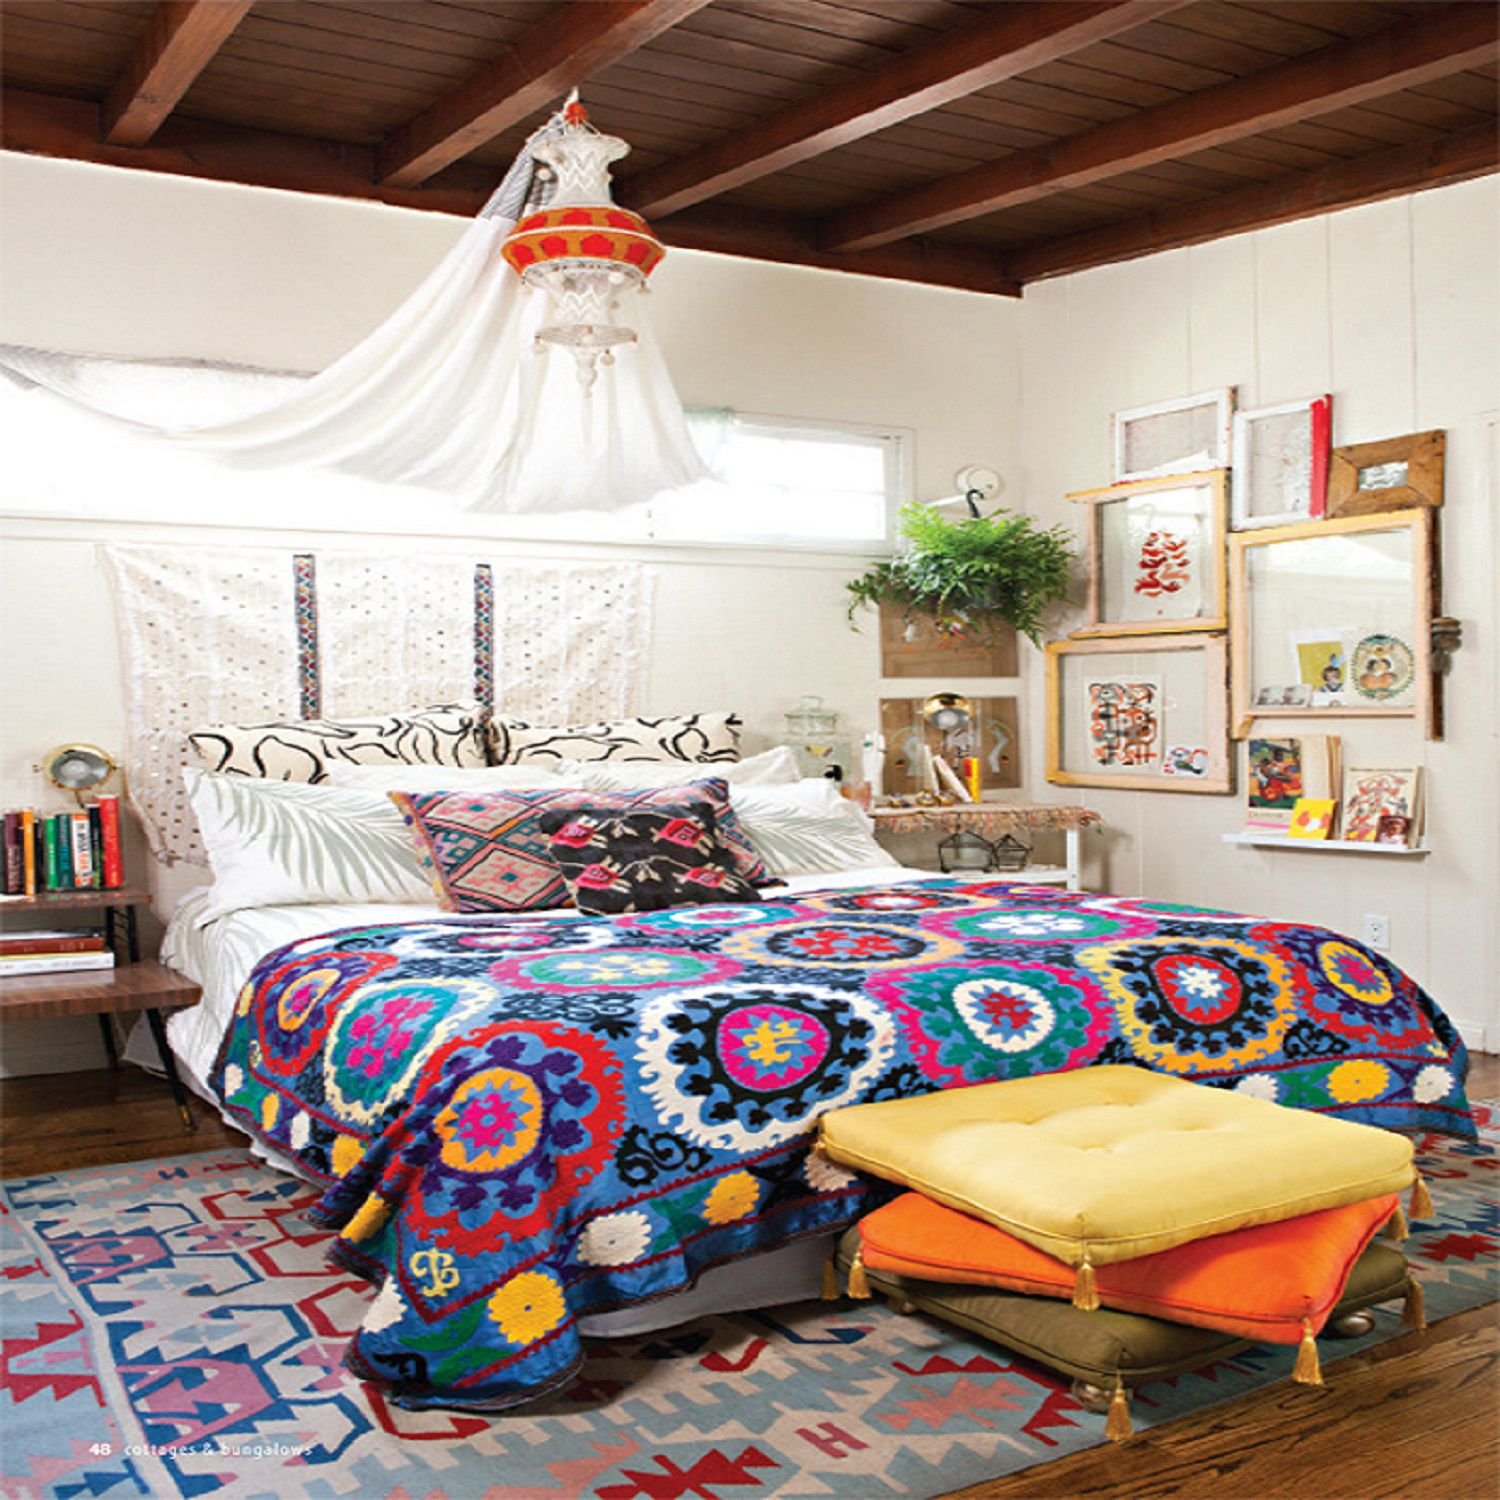 Home Gallery Design Ideas: Beautiful Boho Bedroom Decorating Ideas And Photos